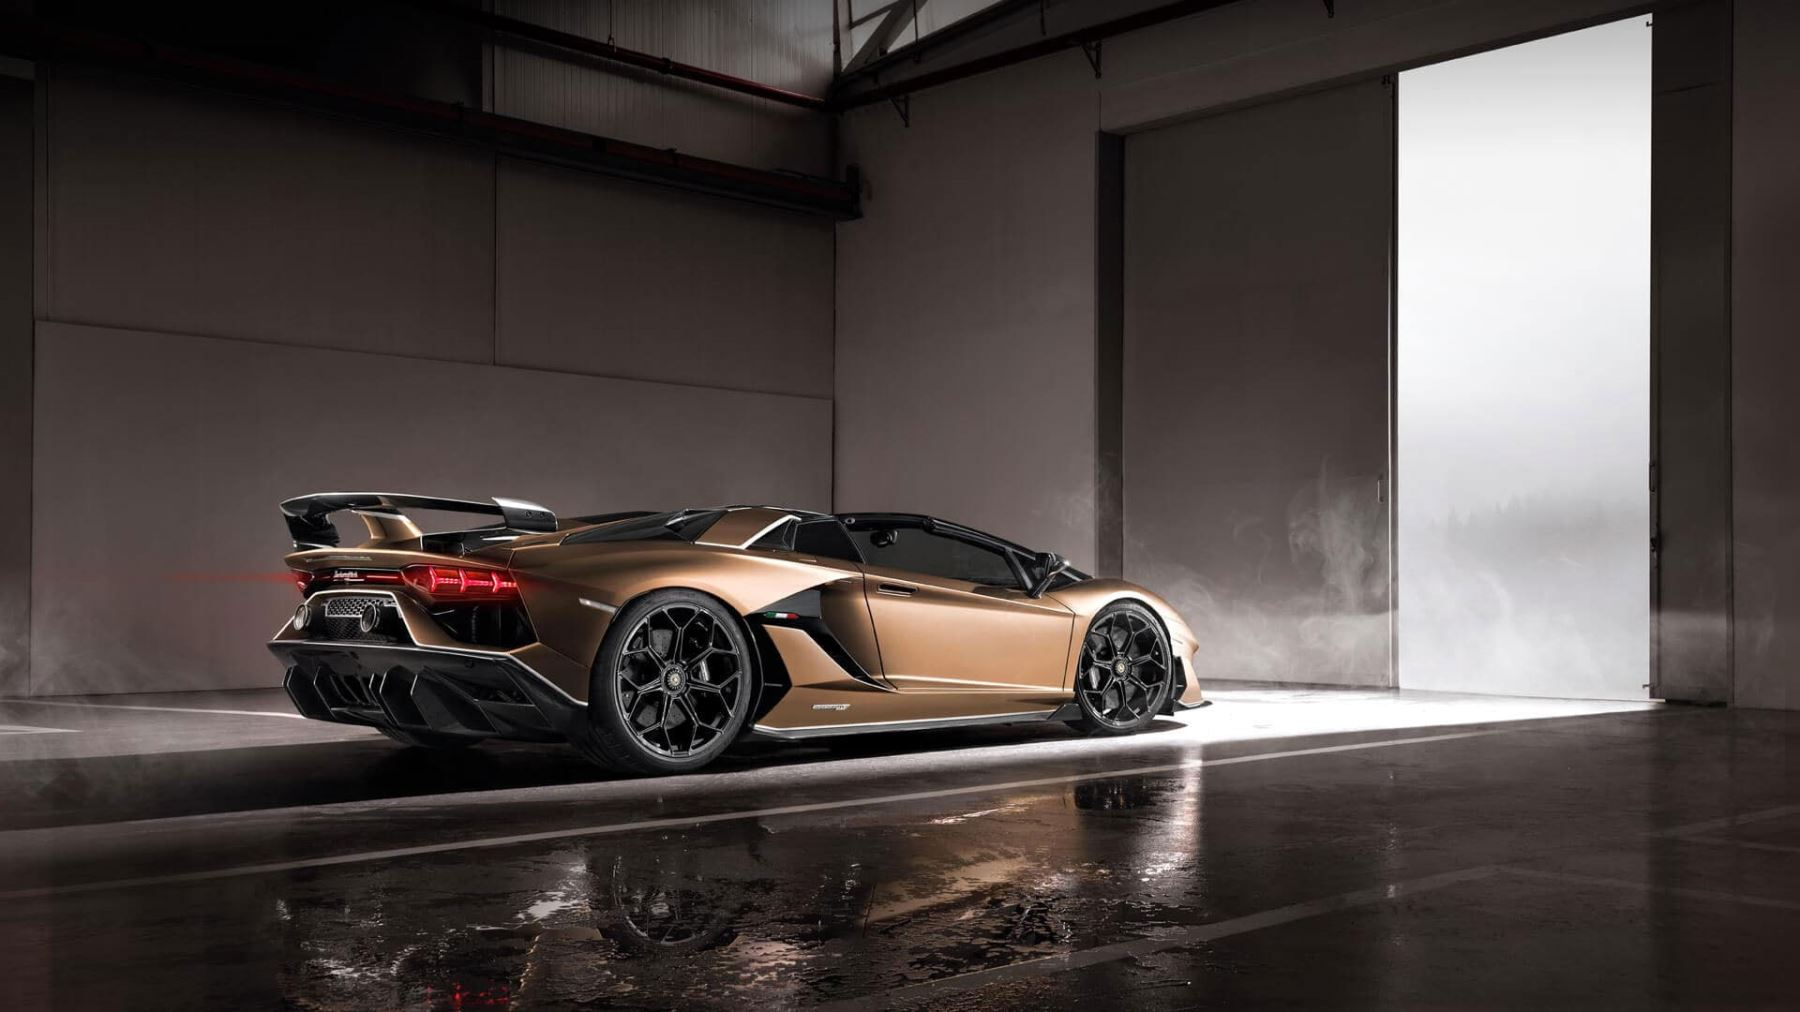 Lamborghini Aventador SVJ Roadster - Real emotions shape the future image 6